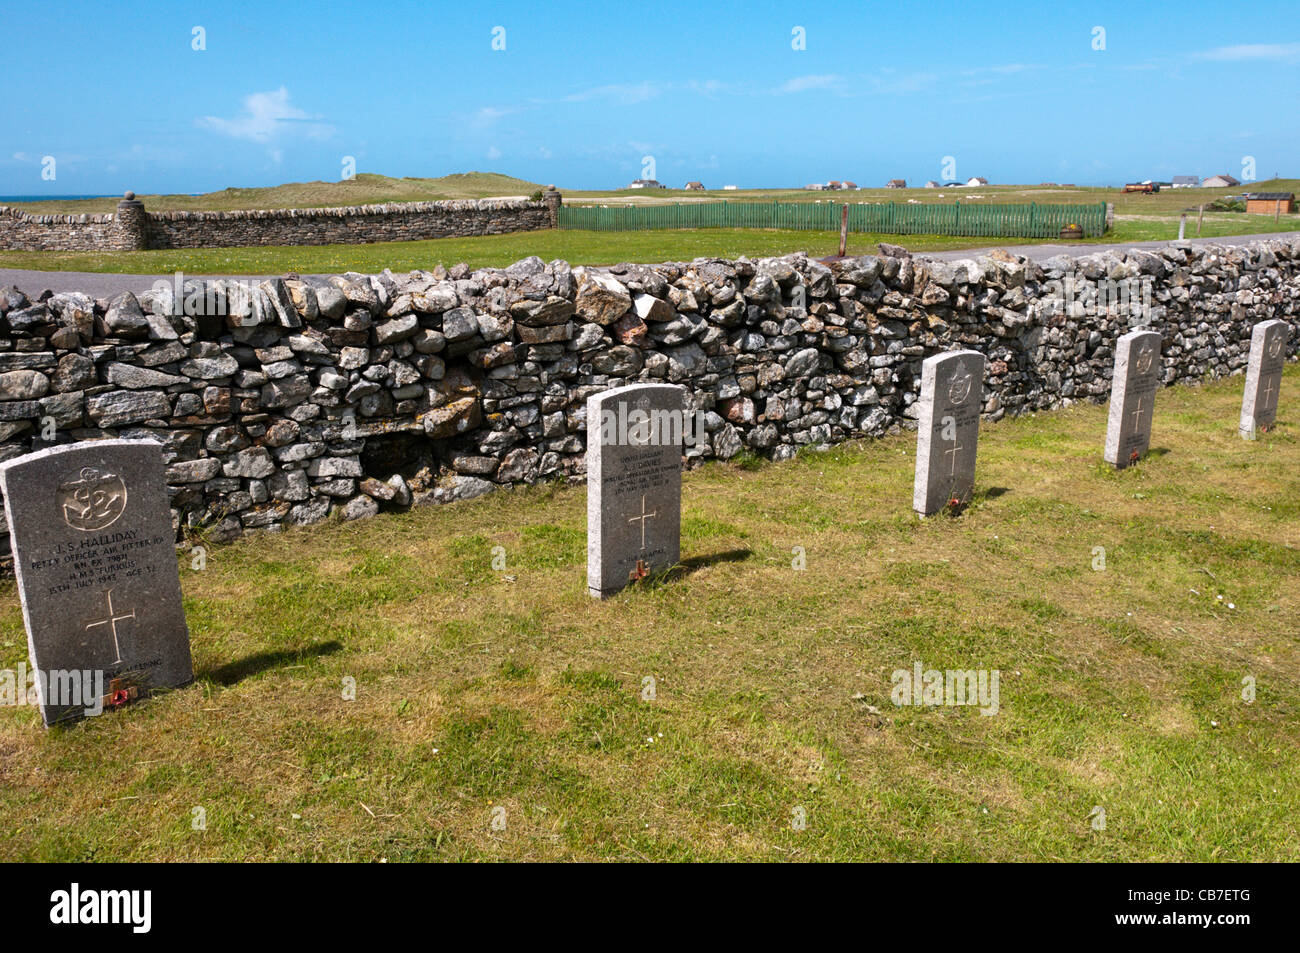 Second World War gravestones in Cladh Mhuire graveyard on the island of Benbecula in the Outer Hebrides - Stock Image